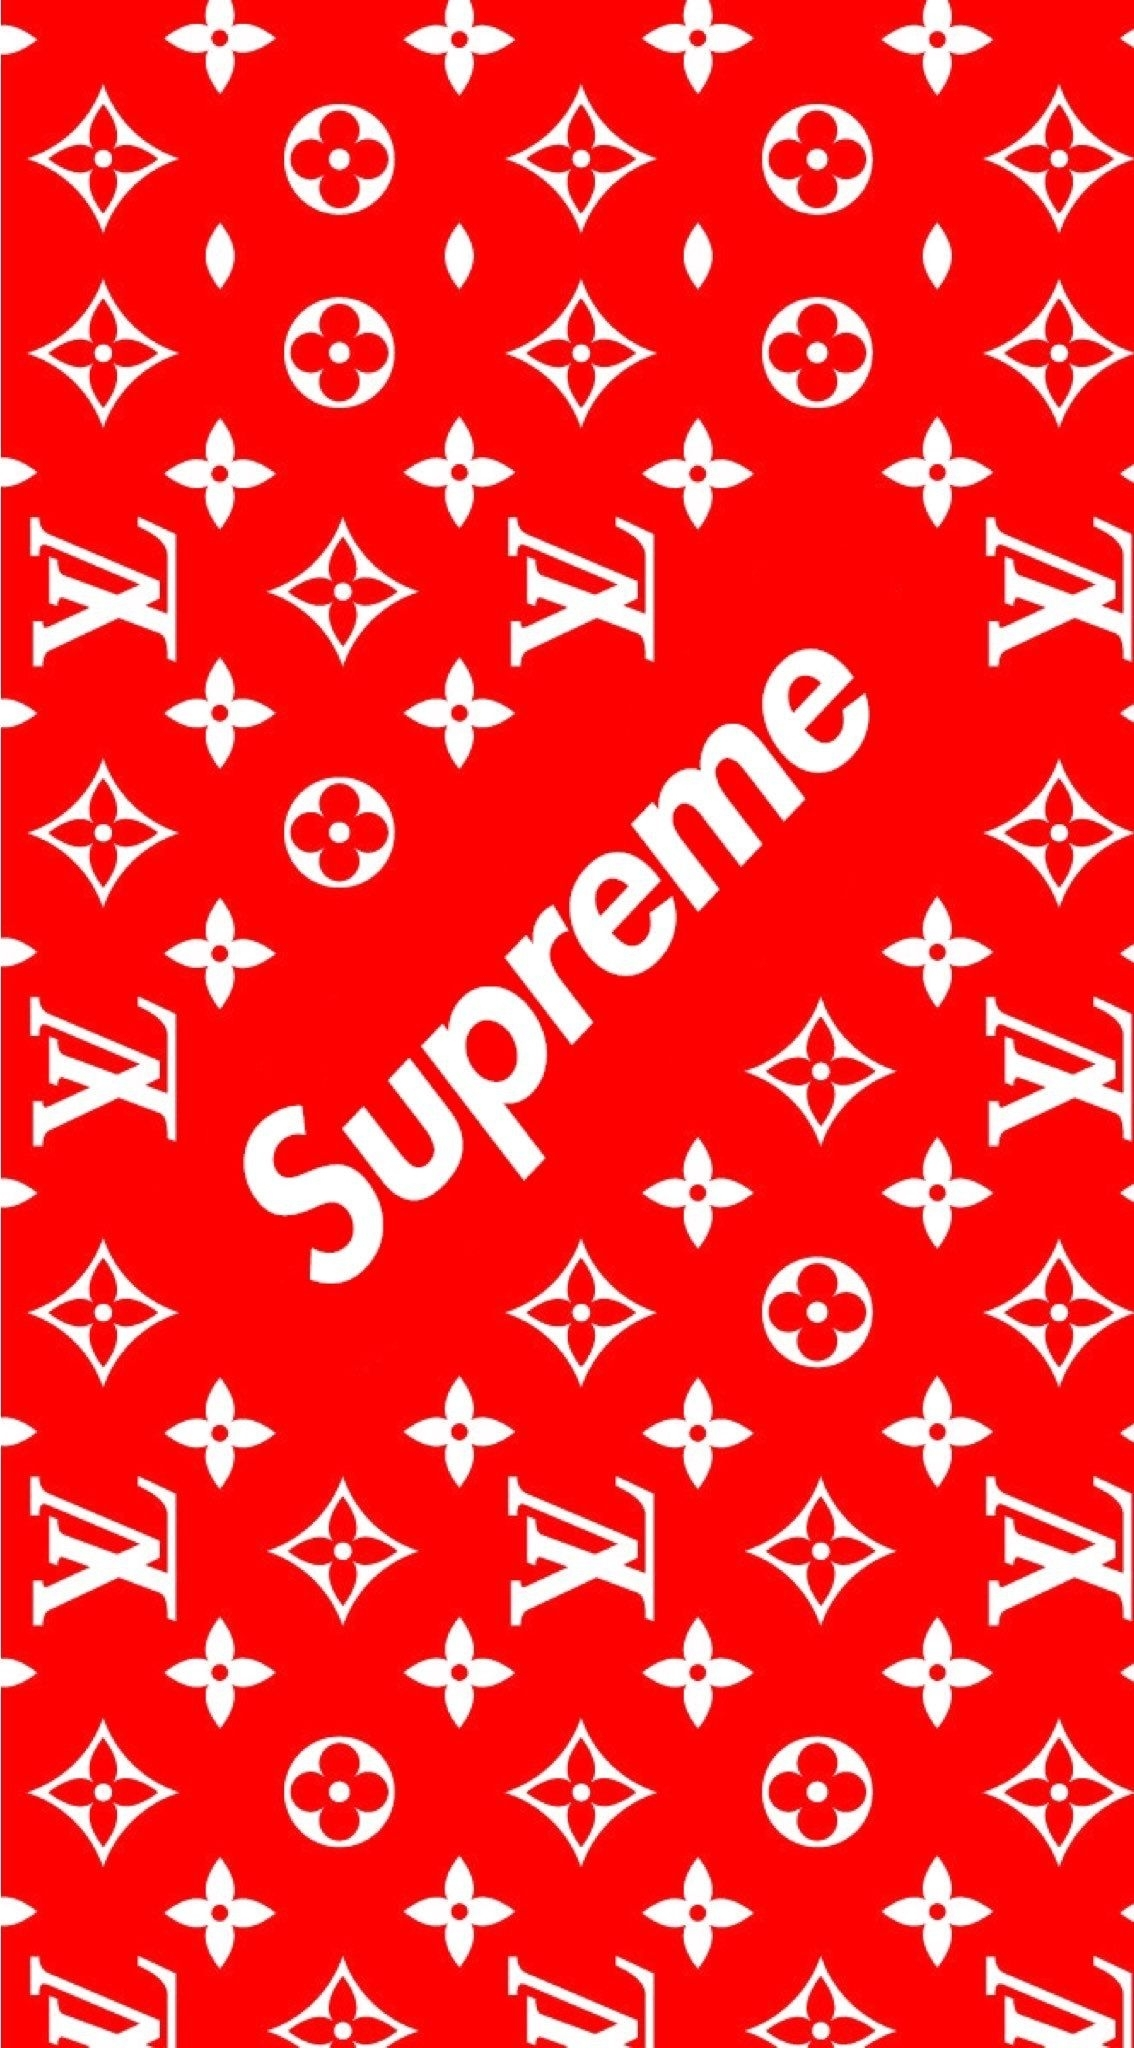 supreme x louis vuitton | fonds d'écran | pinterest | Écran, fond